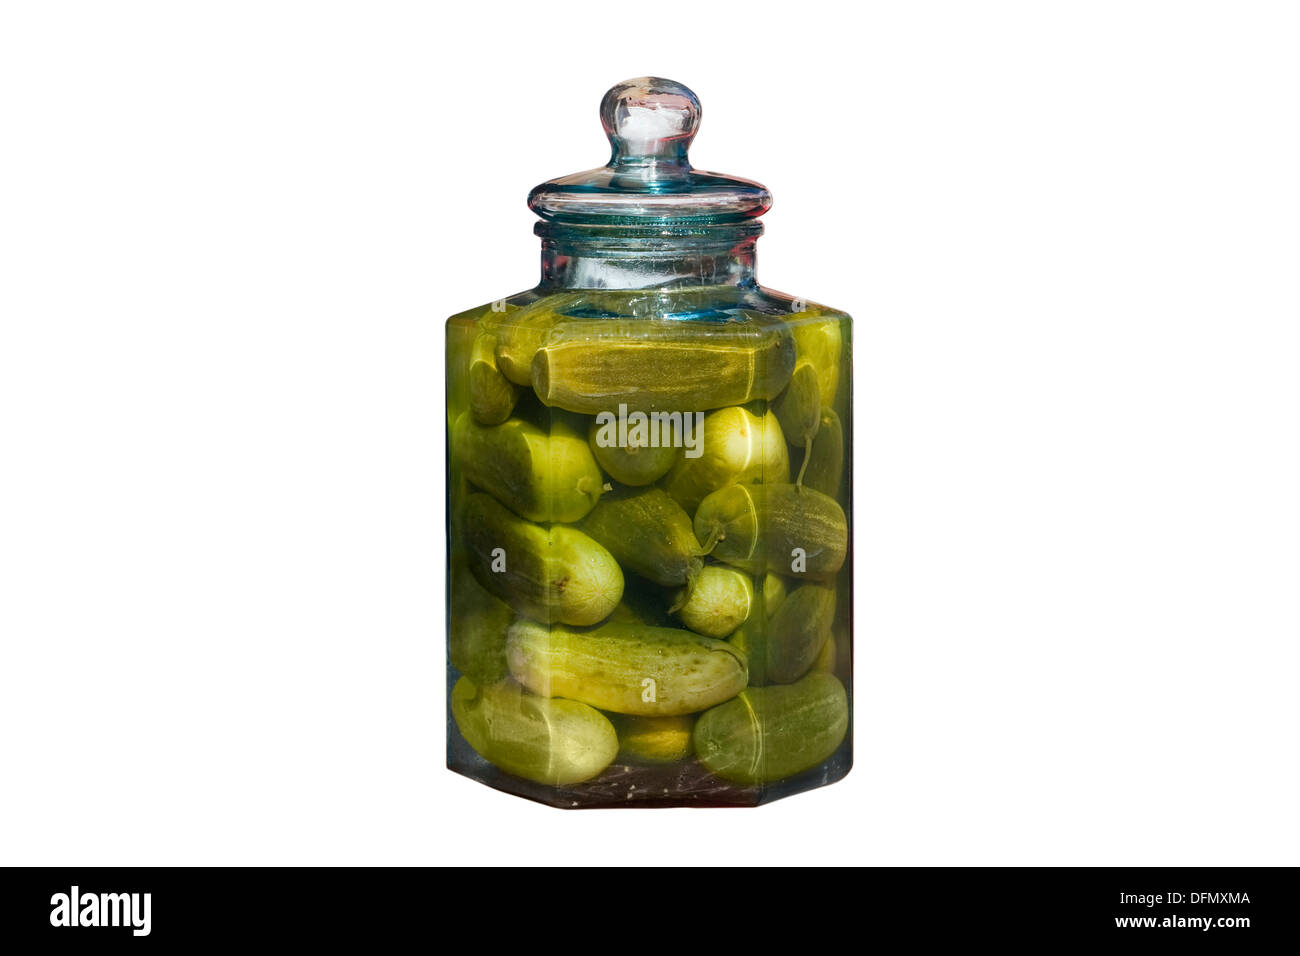 Cut Out. Large glass jar with lid containing whole dill pickles in brine isolated on white background. - Stock Image